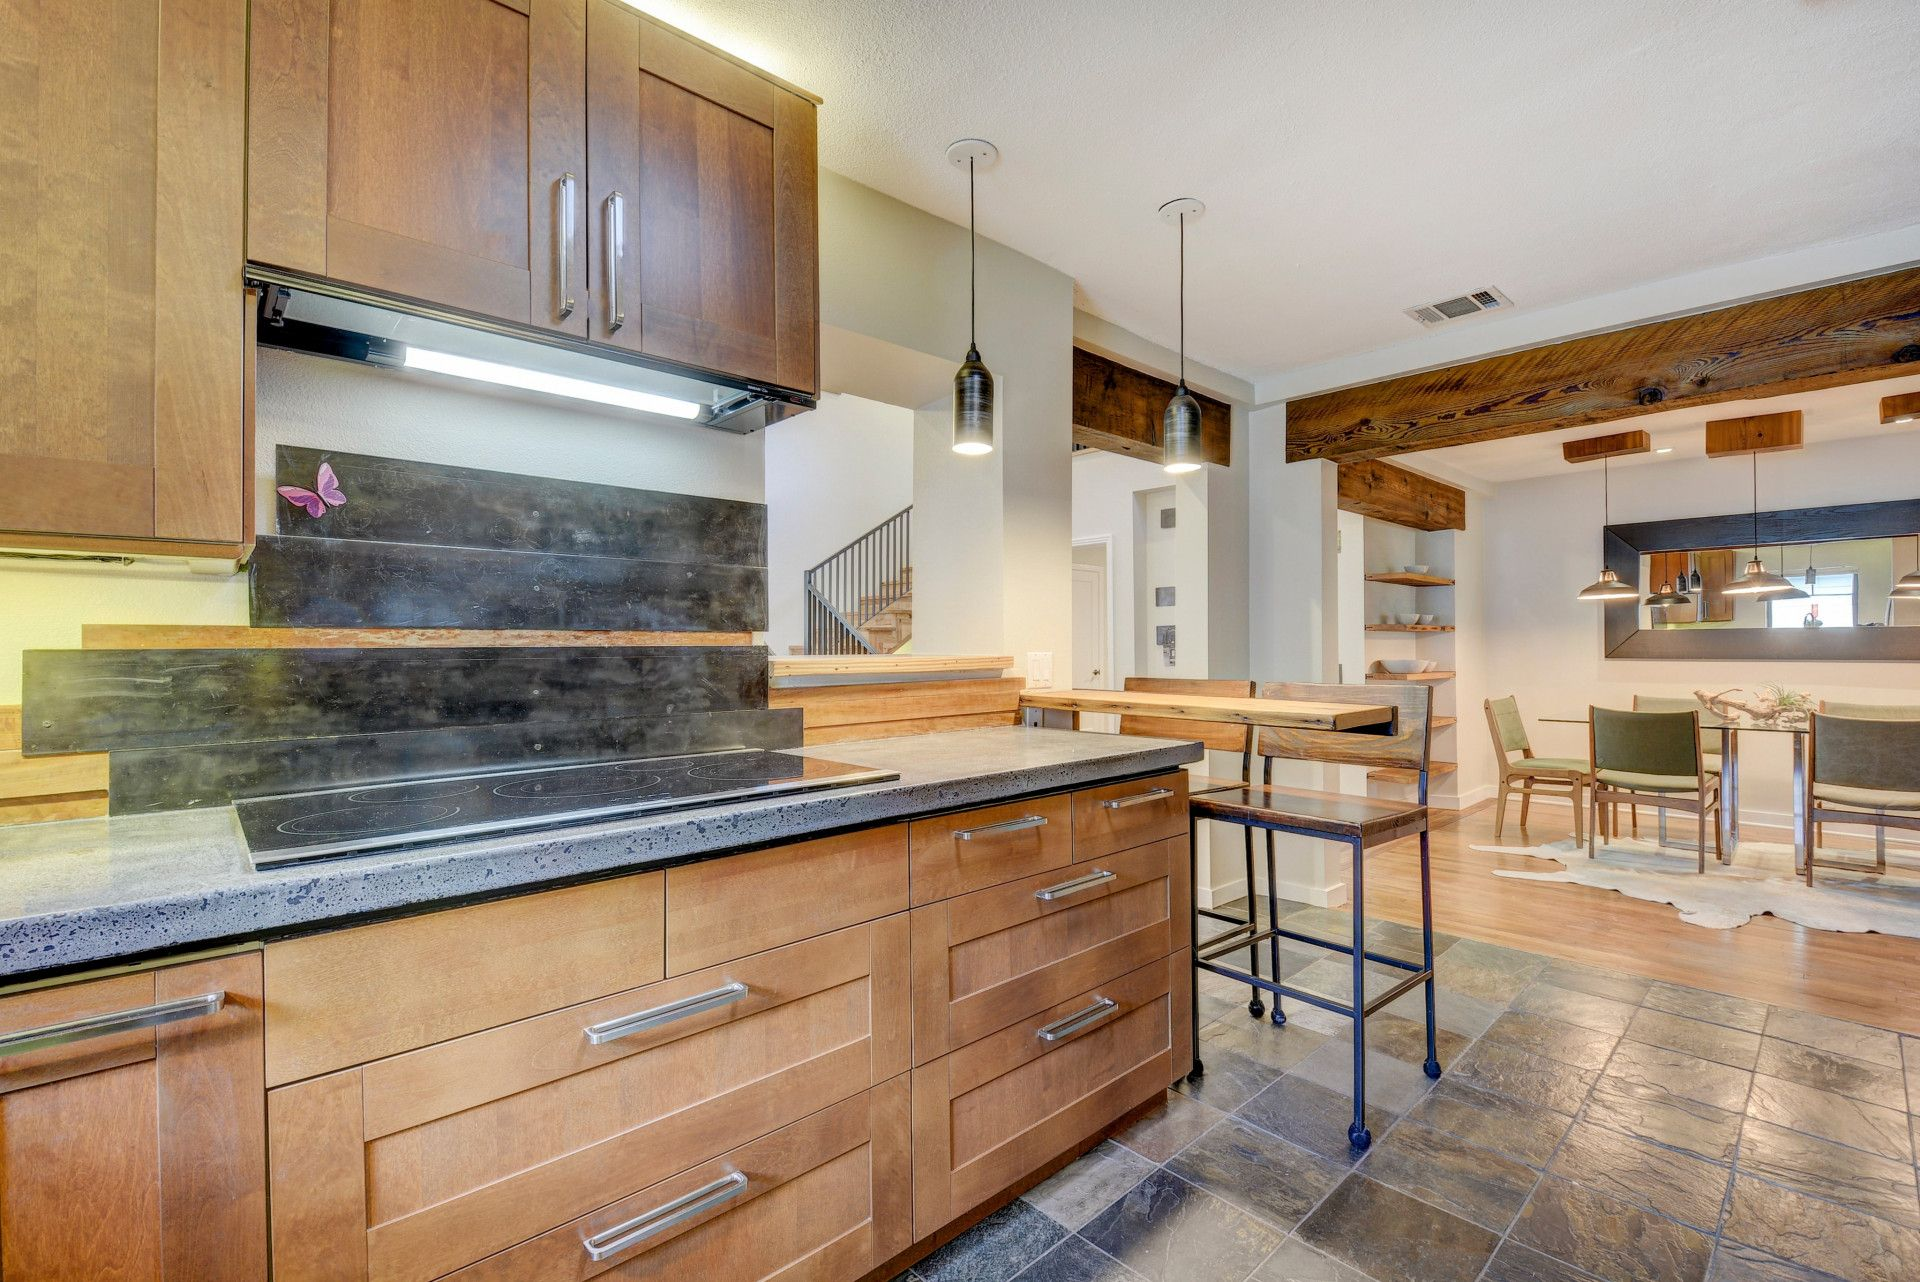 1706 East 40th Street, Austin, TX 78722. Powered by ...